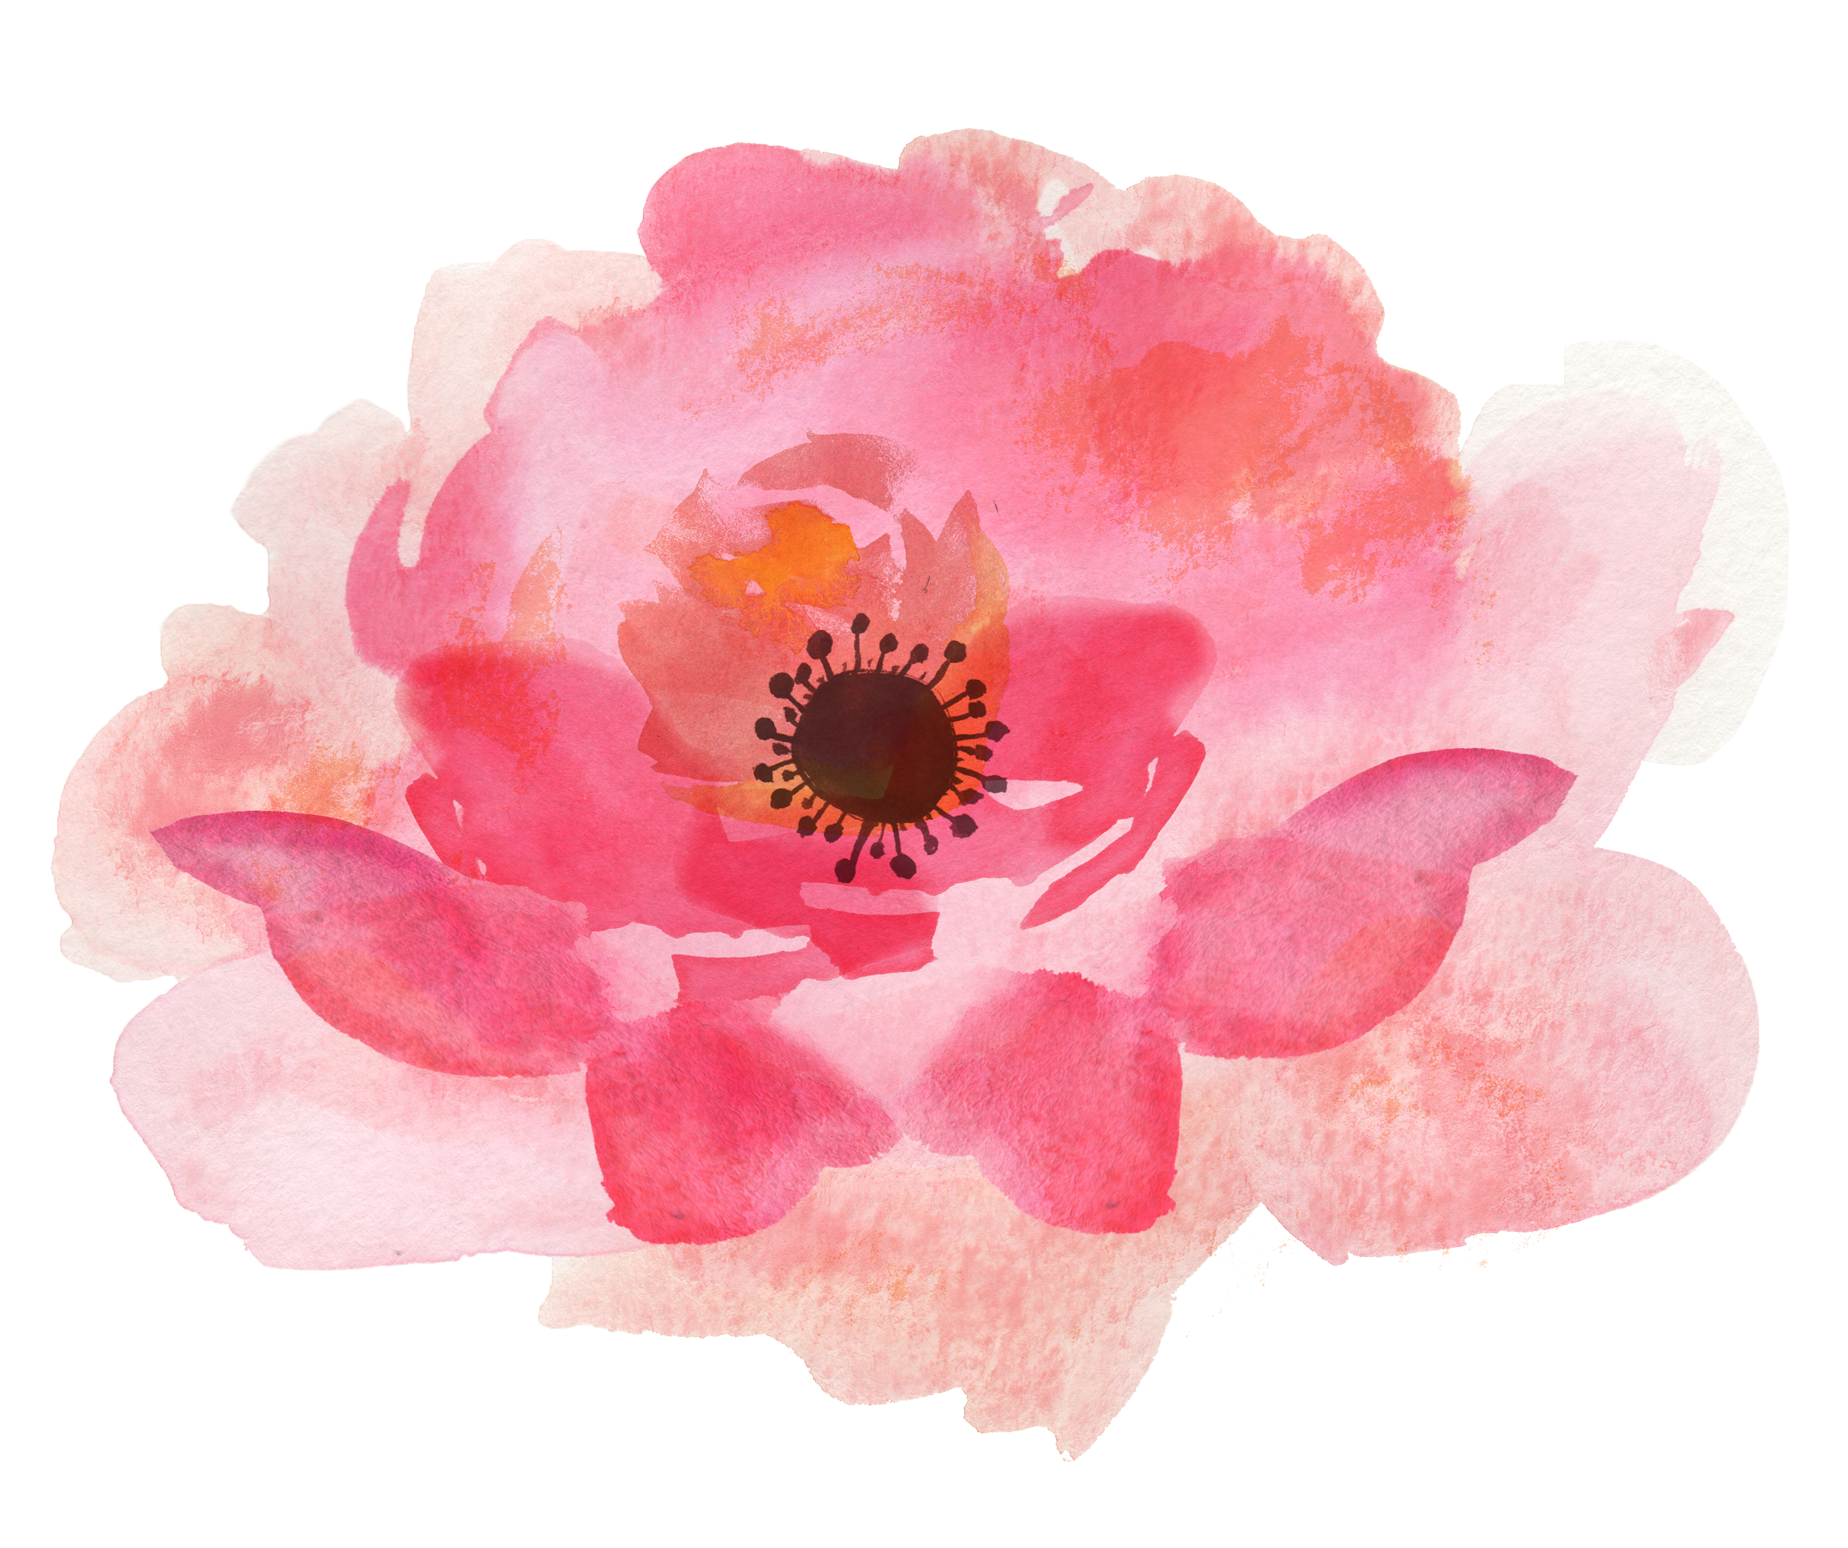 Pink Watercolor Flowers High-quality Png image #46956